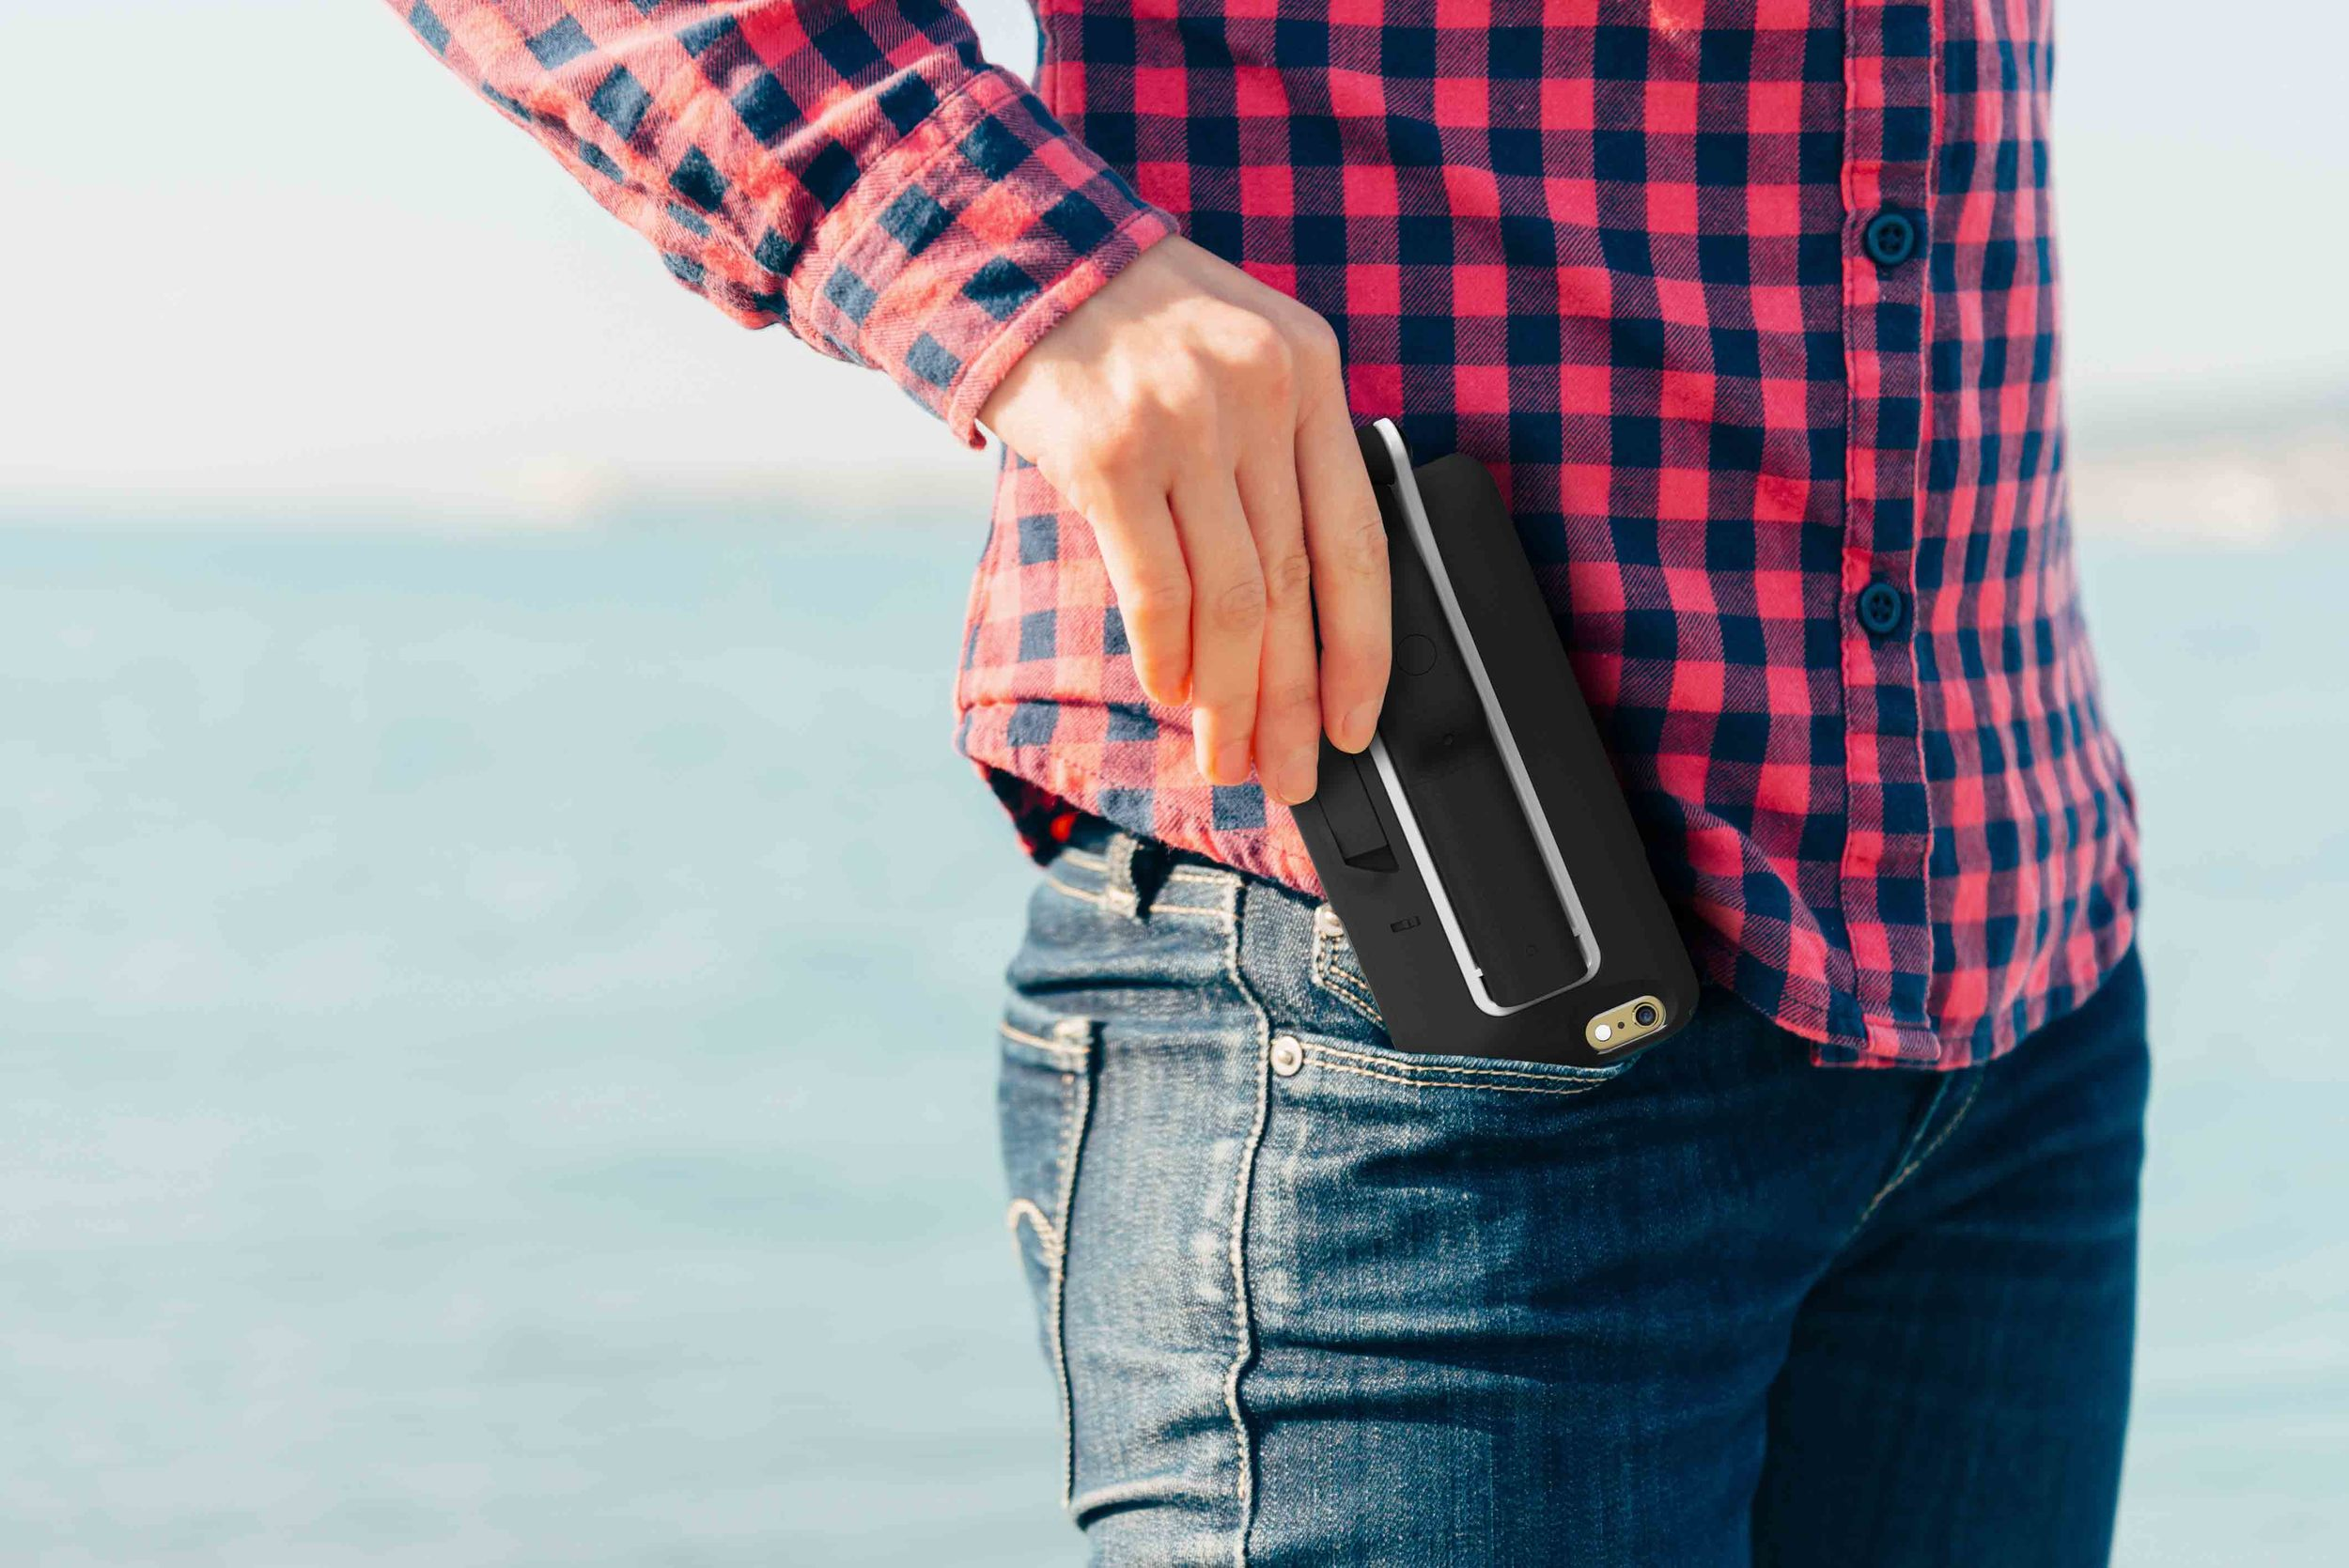 FLIP IT – The World's First 4-in-1 Premium iPhone Case